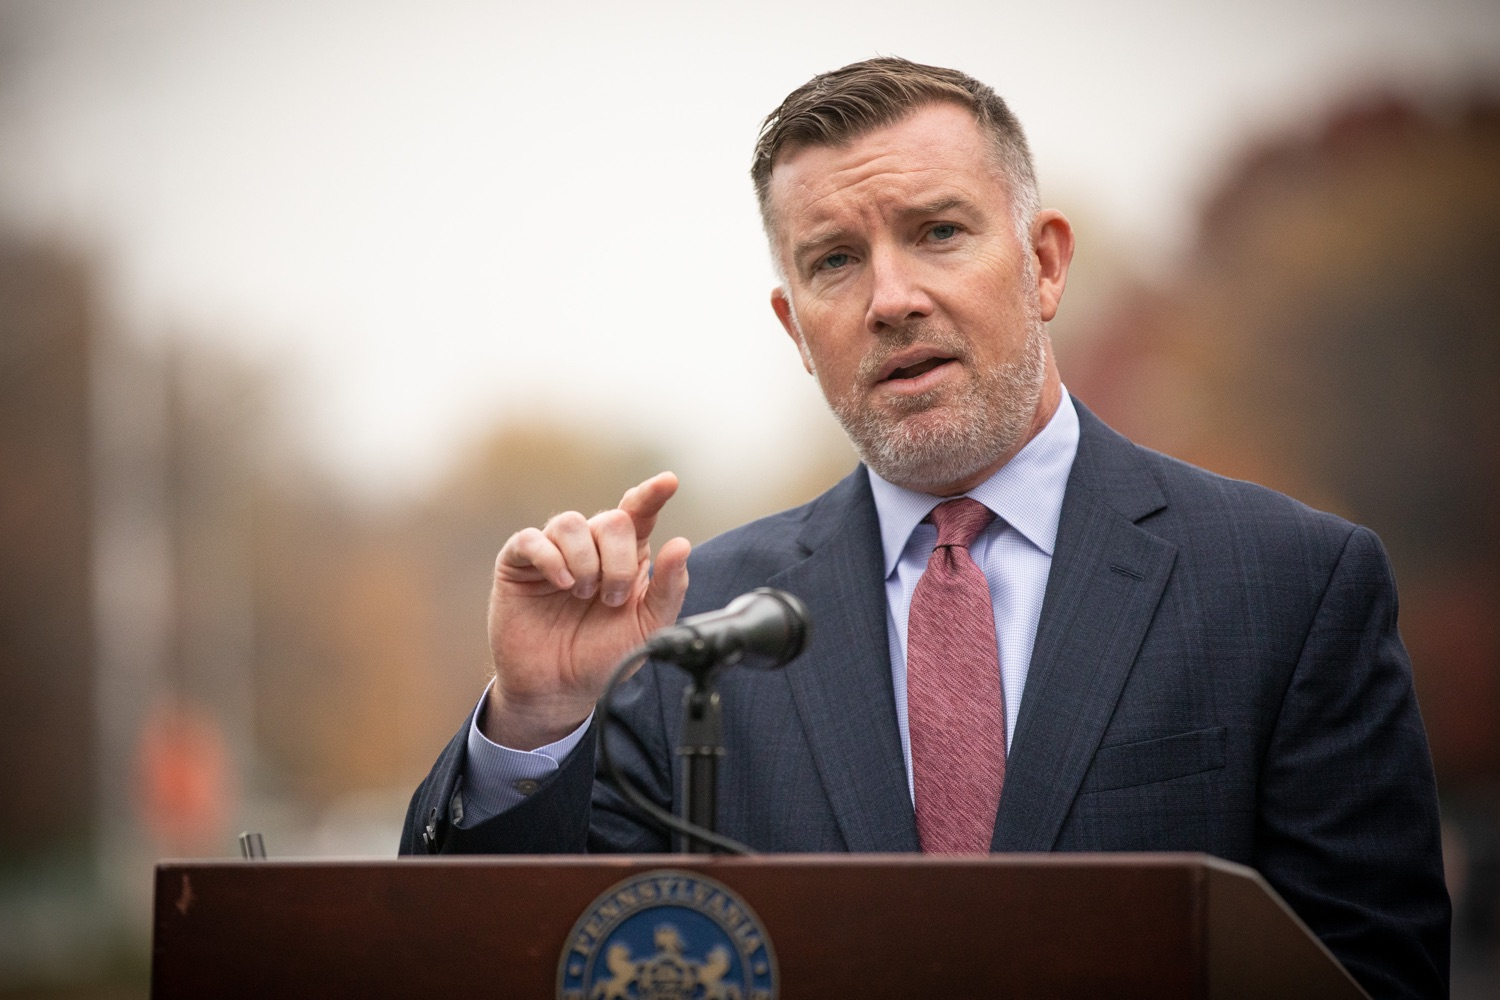 "<a href=""https://filesource.wostreaming.net/commonwealthofpa/photo/17390_penndot_awzse_dz_003.jpg"" target=""_blank"">⇣ Download Photo<br></a>Harrisburg, PA  PA Turnpike CEO Mark Compton speaks at the Automated Work Zone Speed Enforcement (AWZSE) pilot program announcement.  The Pennsylvania Department of Transportation (PennDOT) and the Pennsylvania Turnpike Commission (PTC), in partnership with the Pennsylvania State Police (PSP), today announced the implementation of a statewide Automated Work Zone Speed Enforcement (AWZSE) pilot program to reduce work zone speeds, change driver behavior, and improve work zone safety for workers and motorists. Wednesday, October 30, 2019"